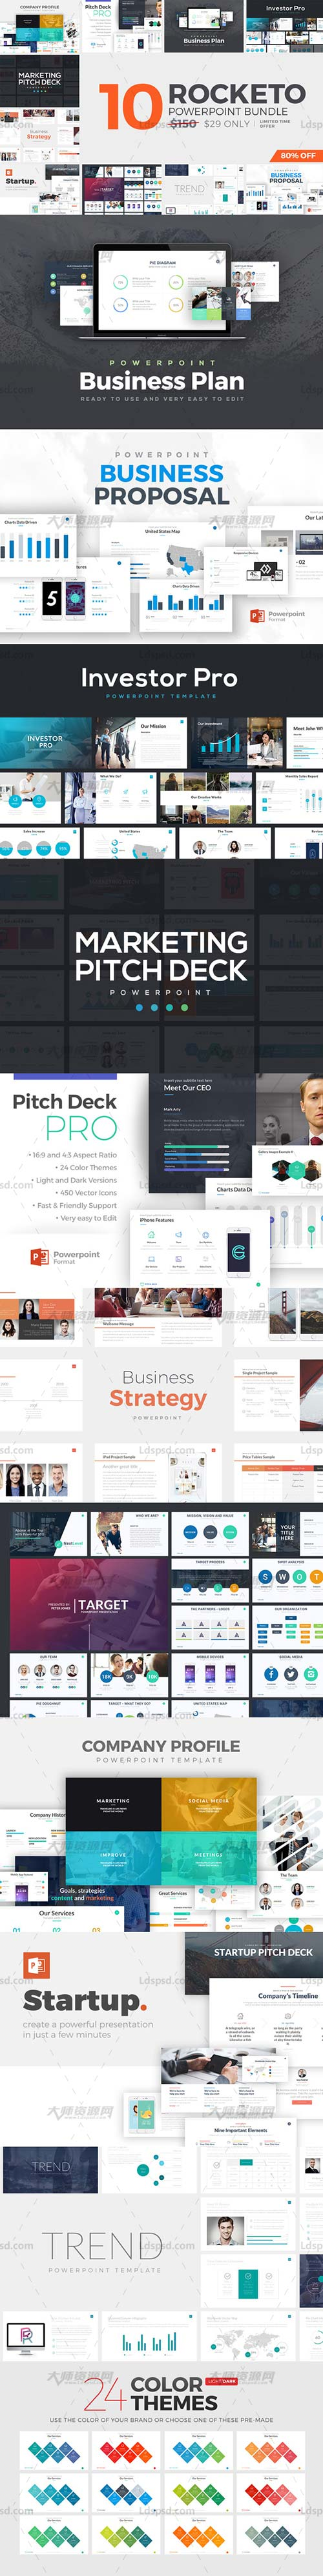 Rocketo Powerpoint Templates Bundle,PPT模板-商务专用(10套合集)